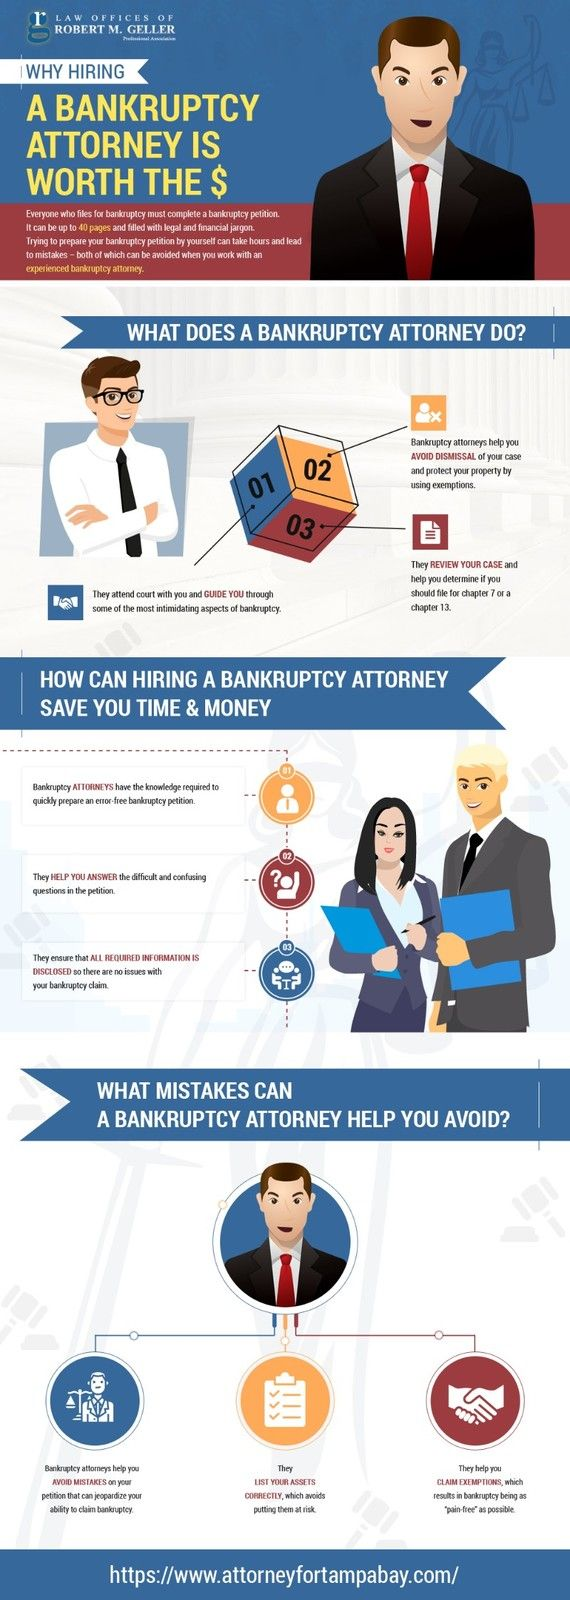 Why Hiring A Bankruptcy Attorney Is Worth The Money Tampa Florida.